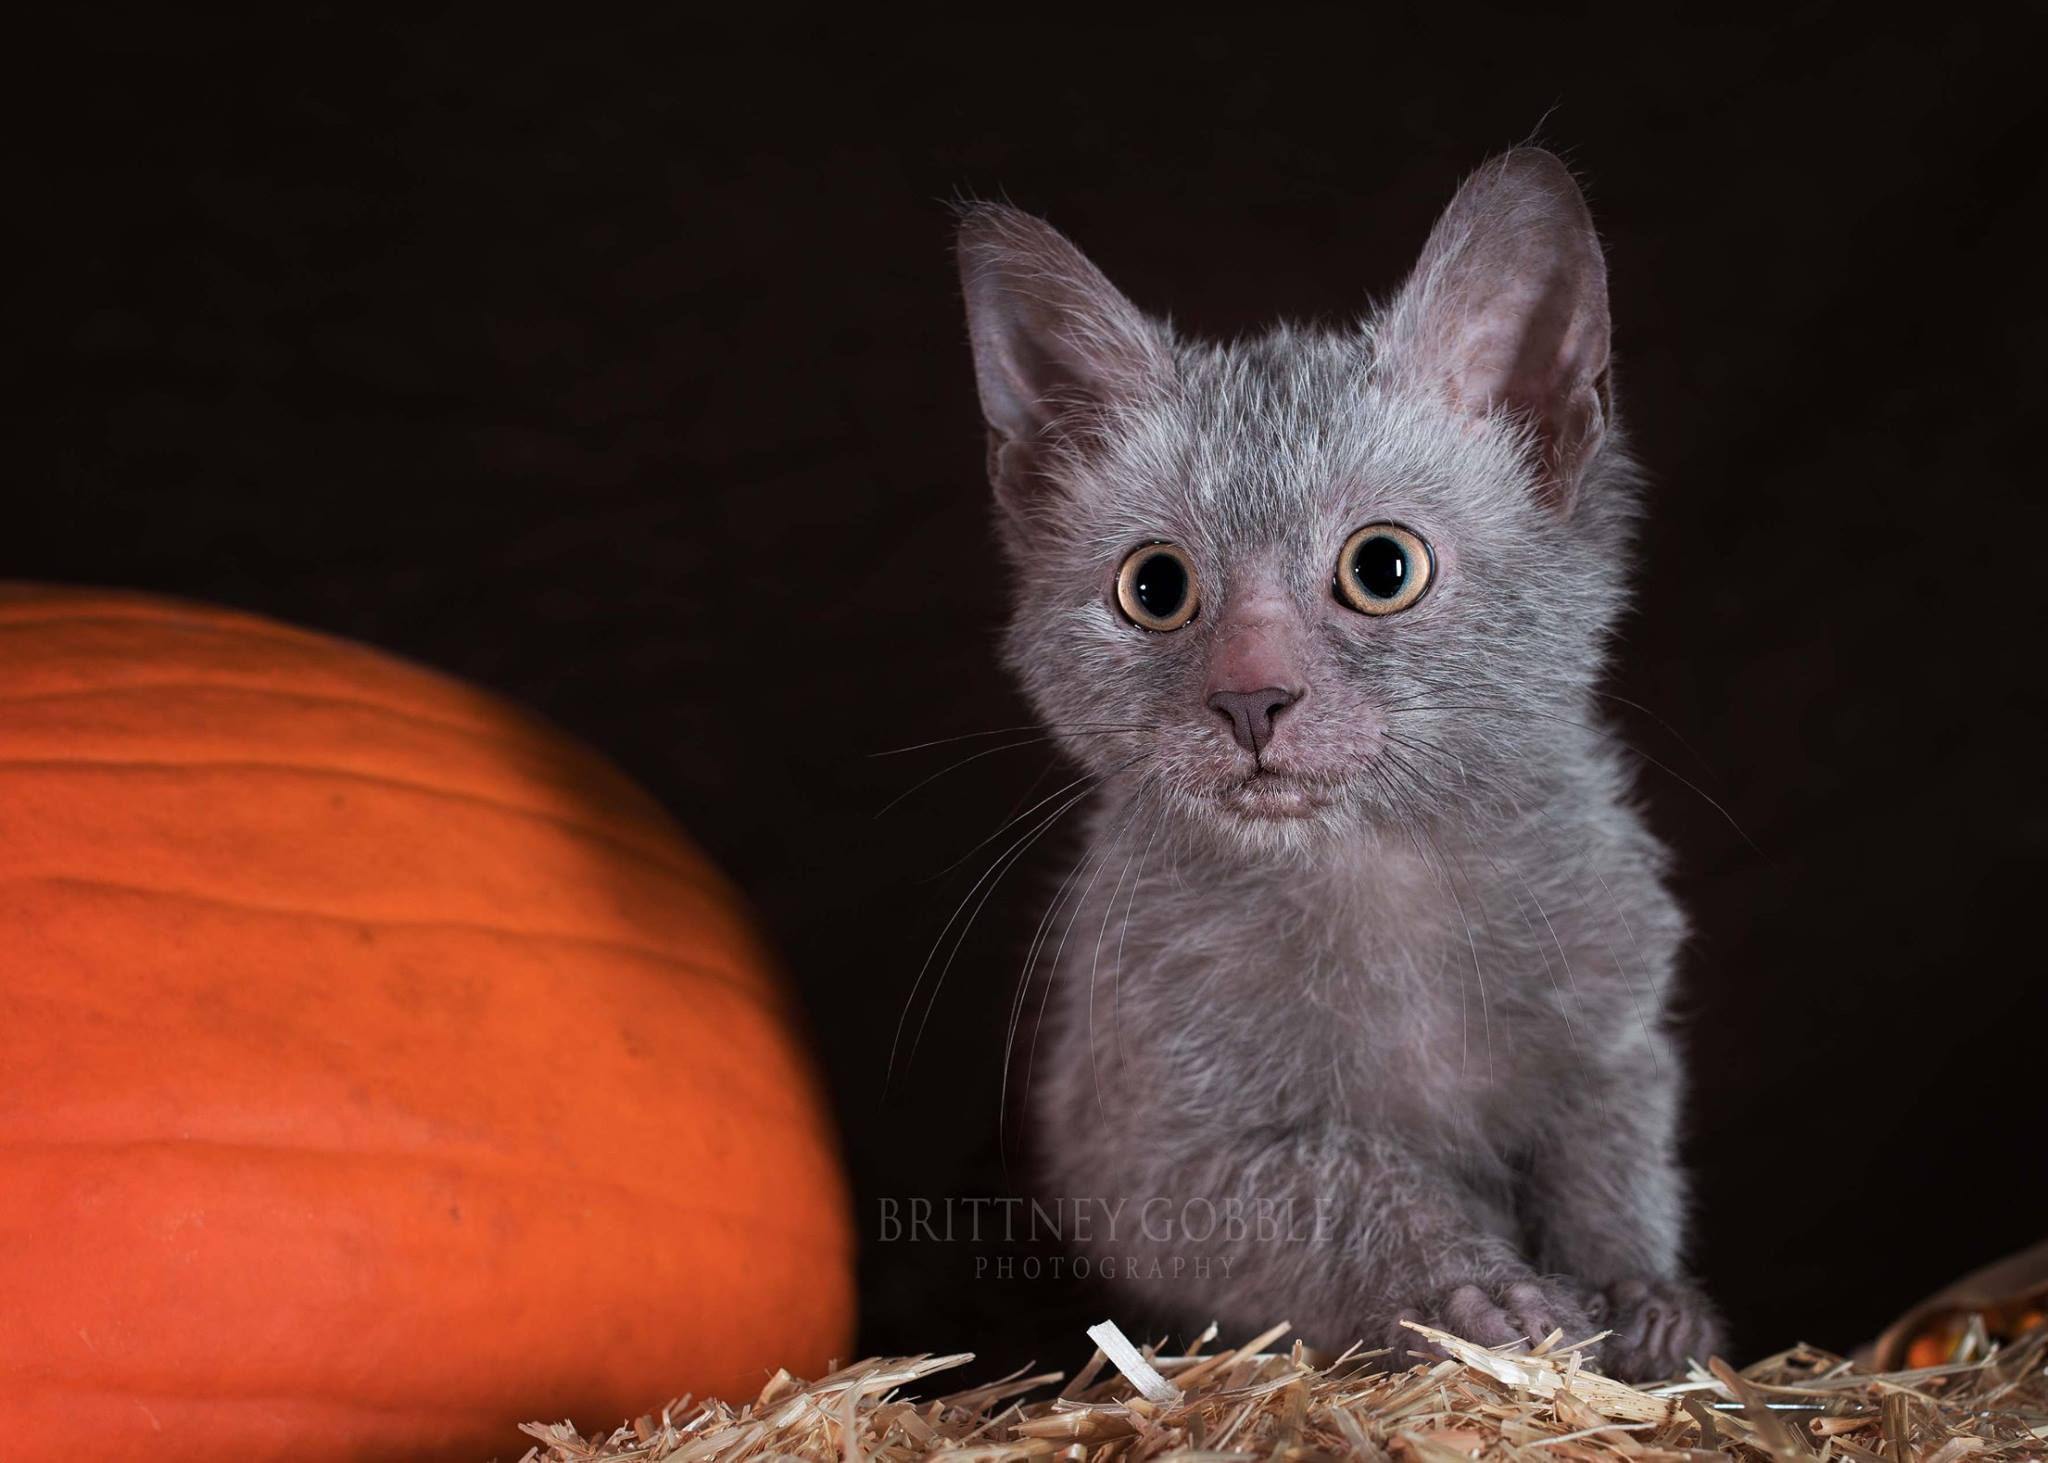 Lykoi Kitten: Lykoi Kittens Breed